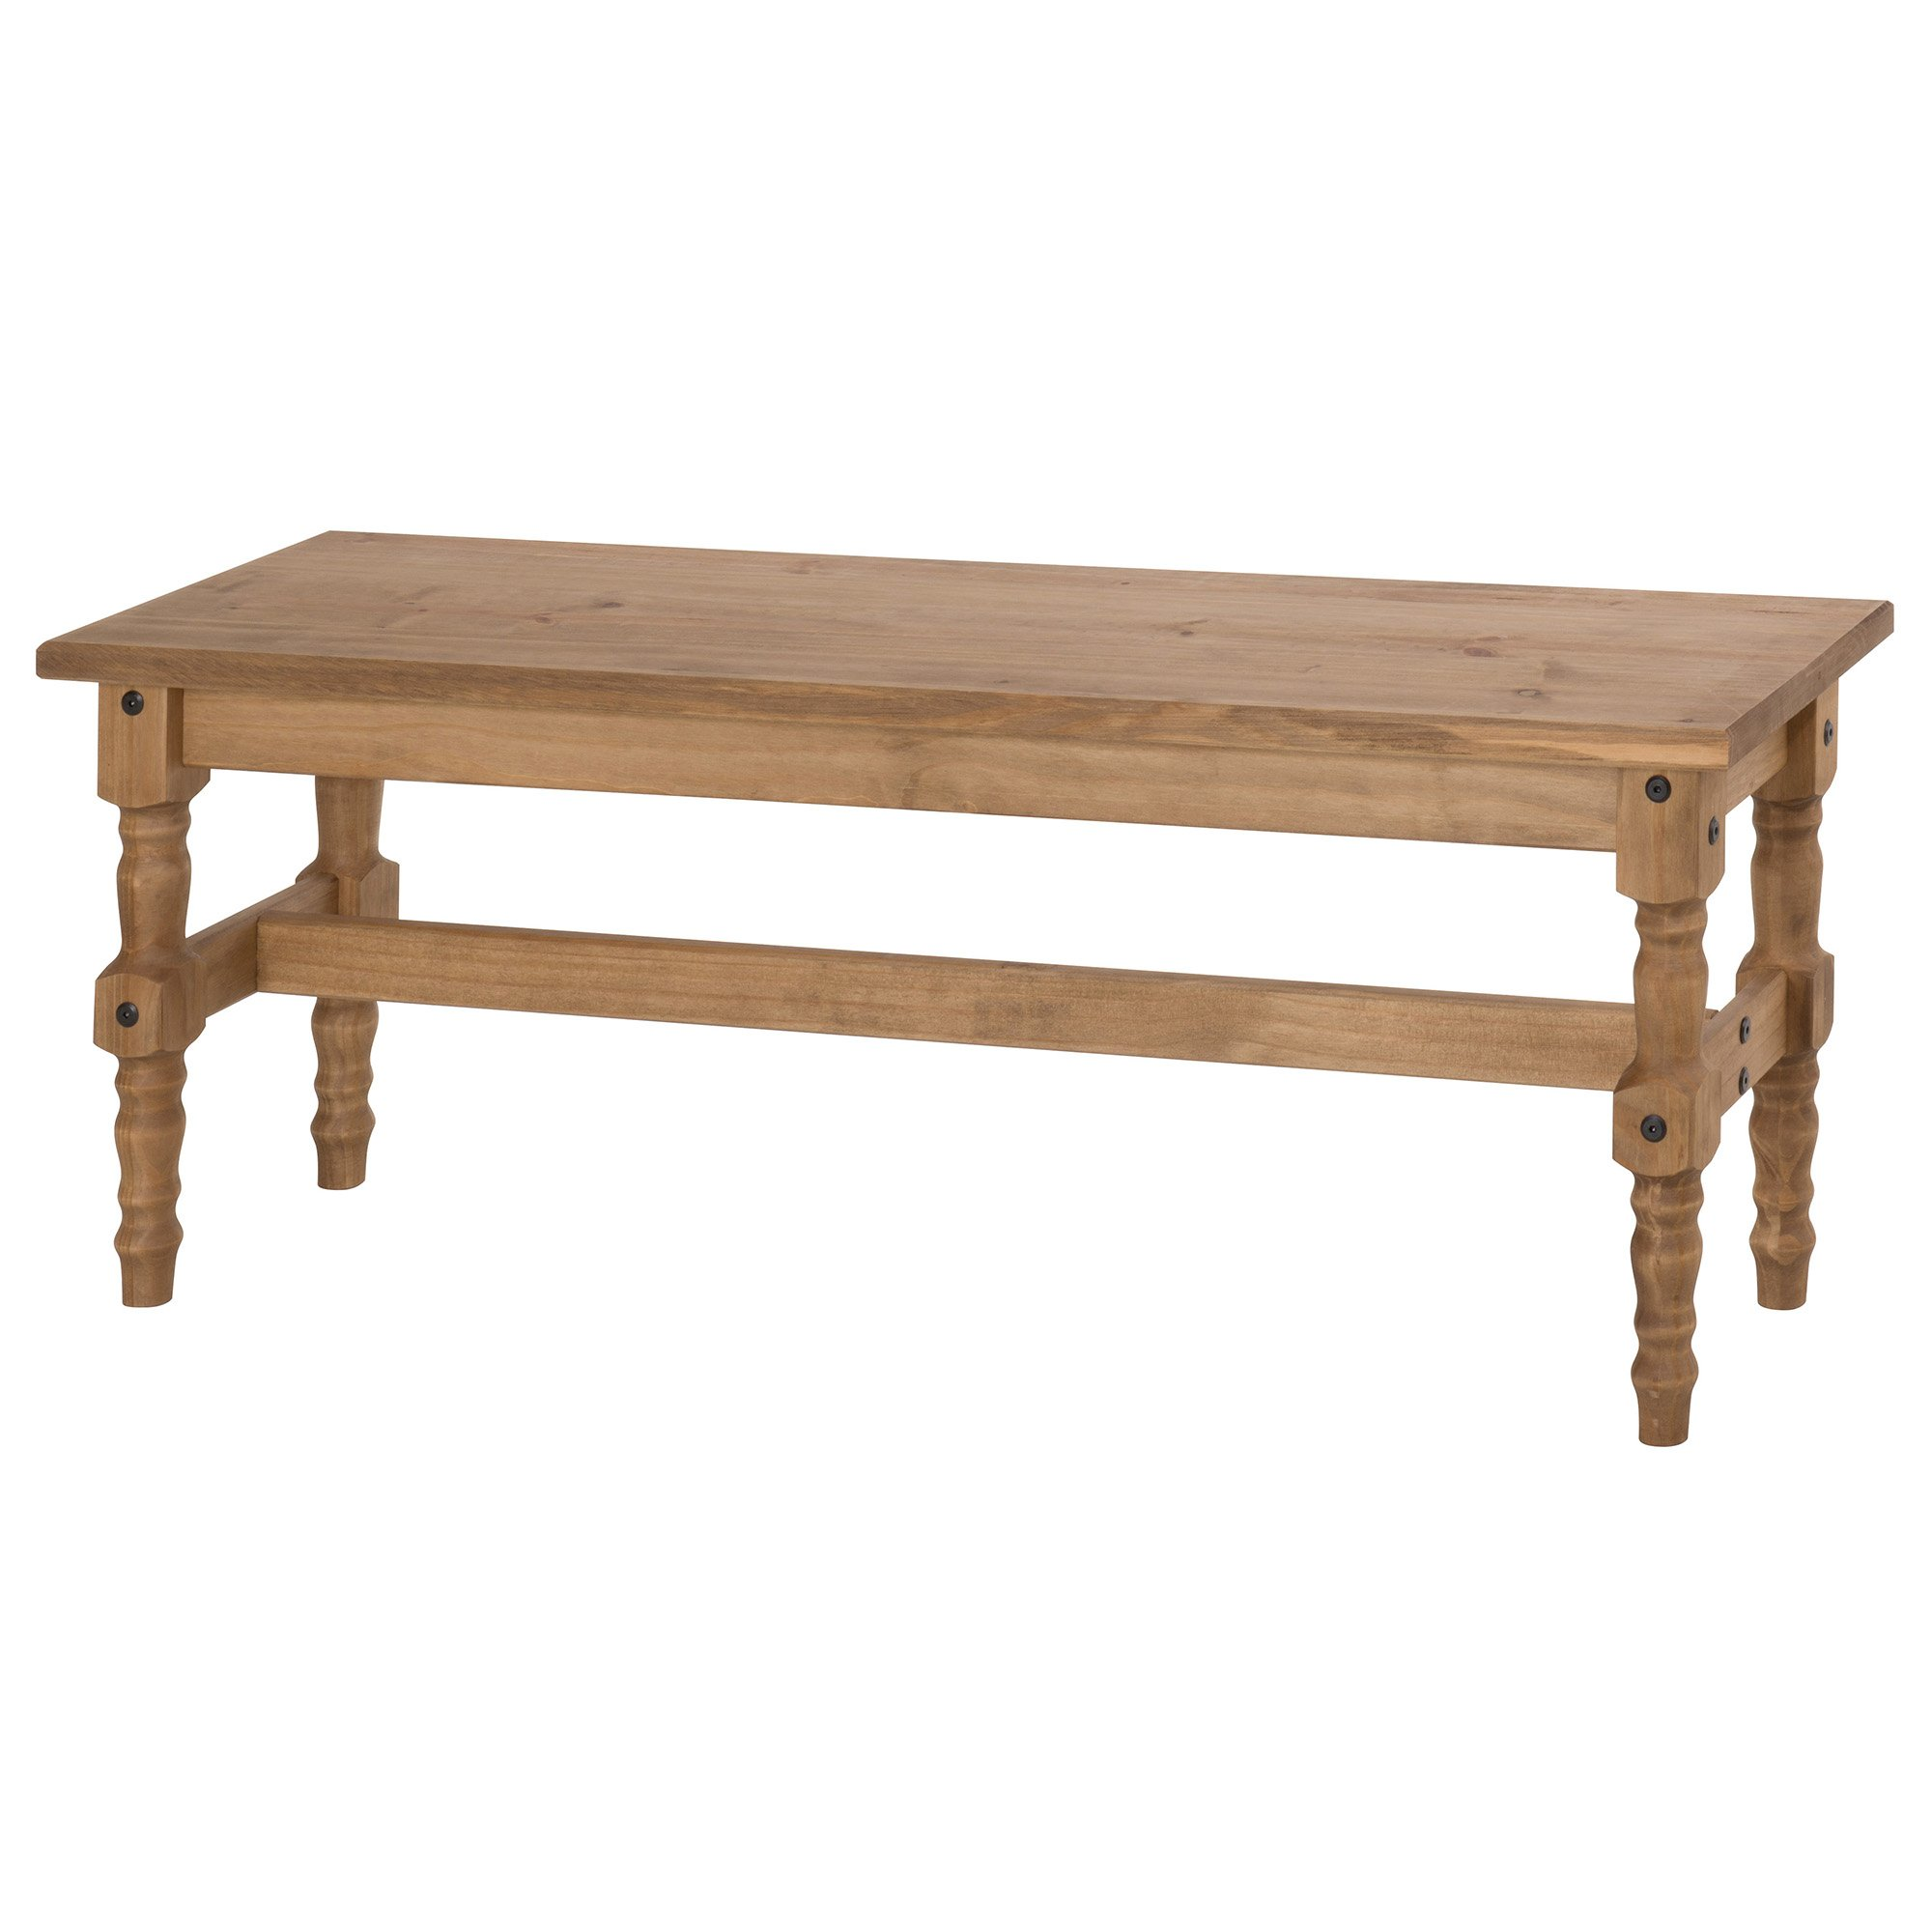 Manhattan Comfort Jay Collection Traditional Wooden Dining Table Bench With Trim Finish, Wood